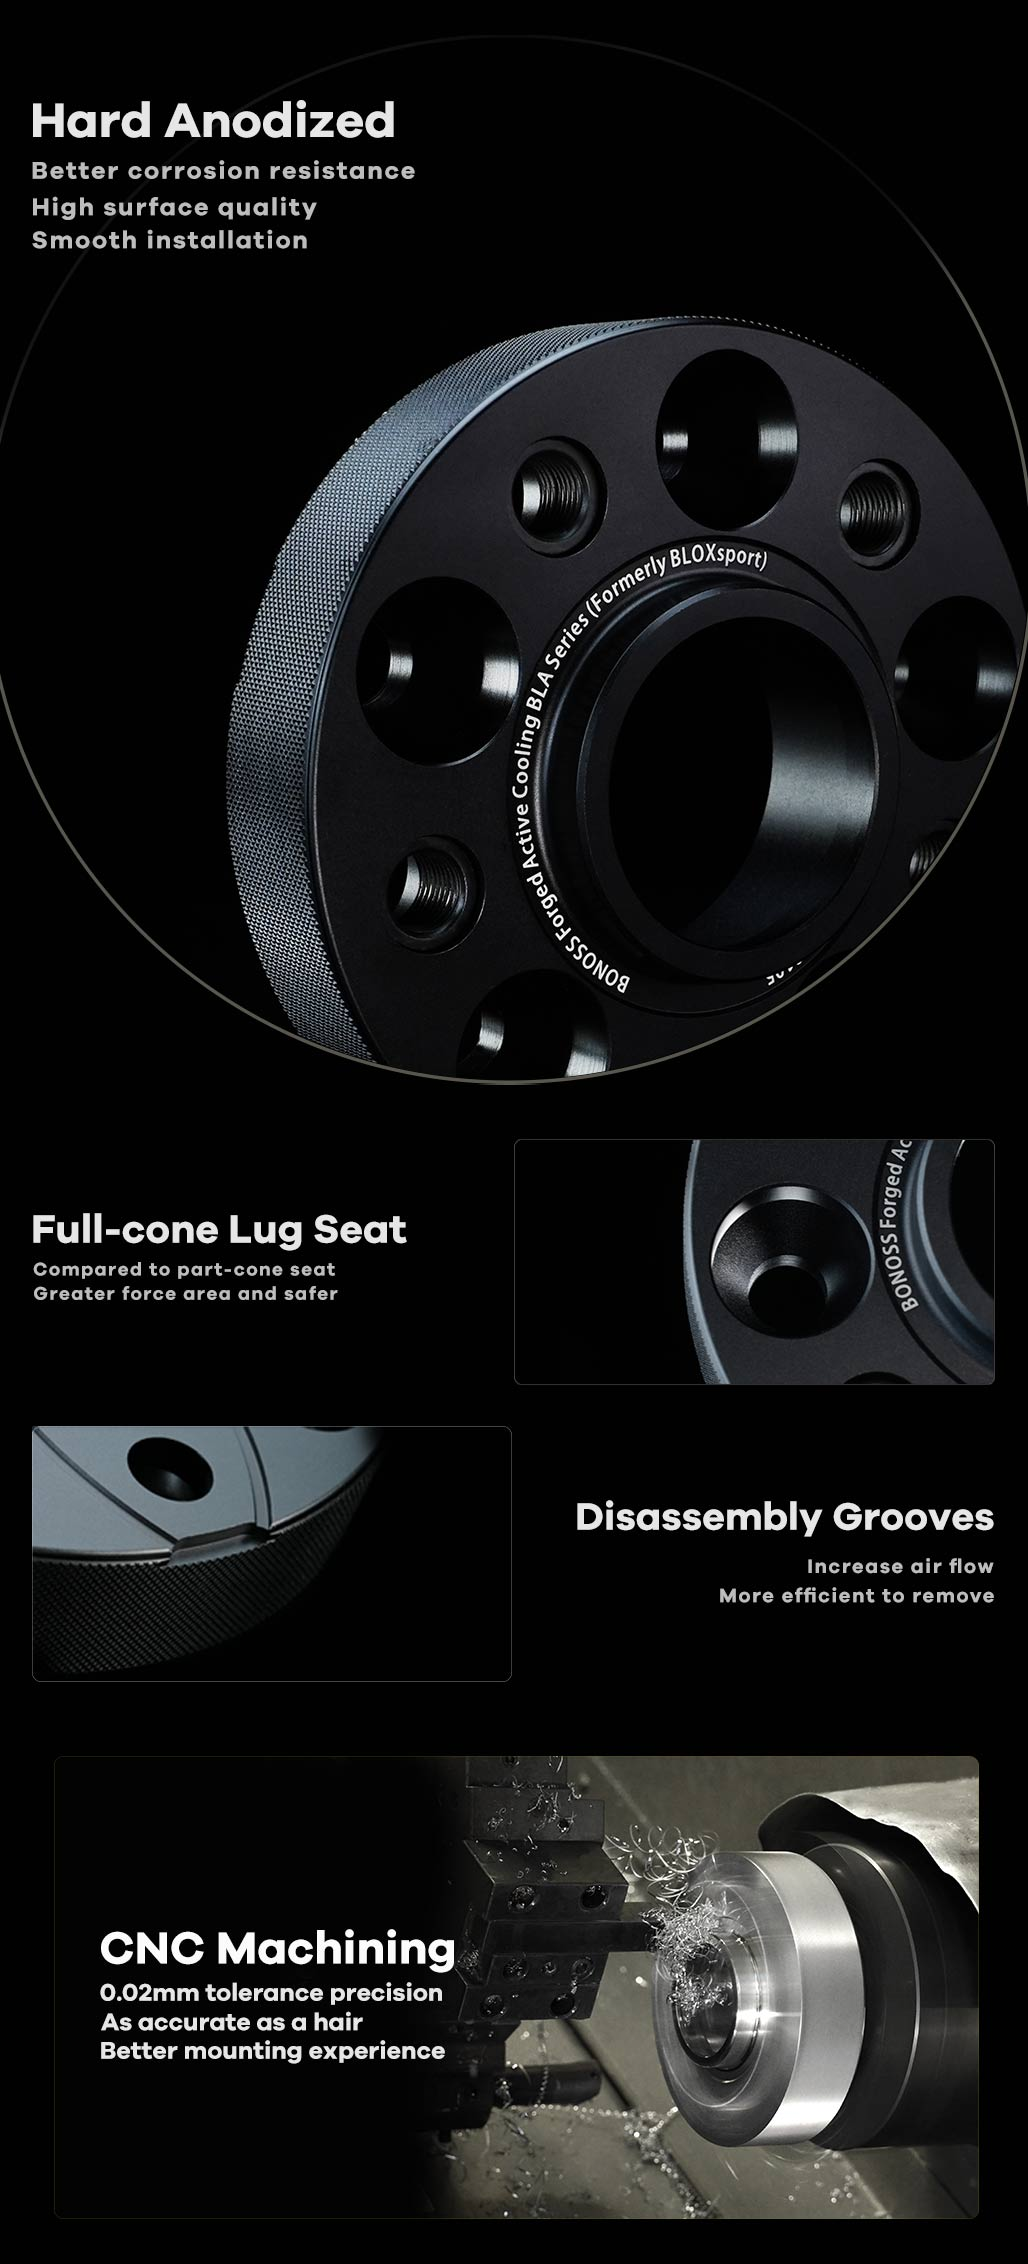 BONOSS Forged Active Cooling AL6061-T6 Hubcentric Wheel Spacers PCD5x114.3 CB66.1 for Renault CMF Tailsman 2015-2021 (3)